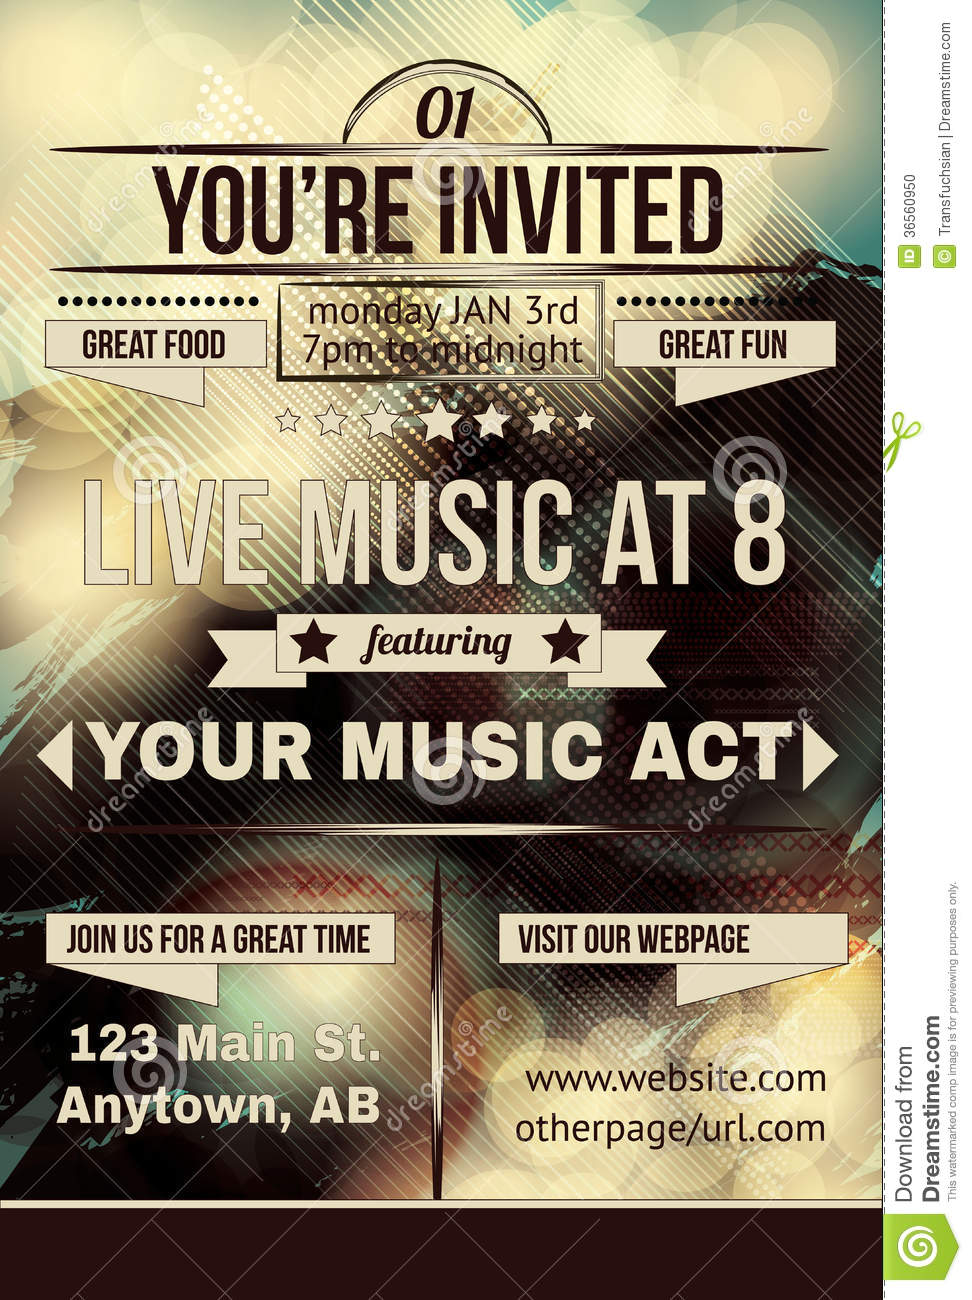 Retro Abstract Party Invitation Flyer Stock Photo - Image: 36560950